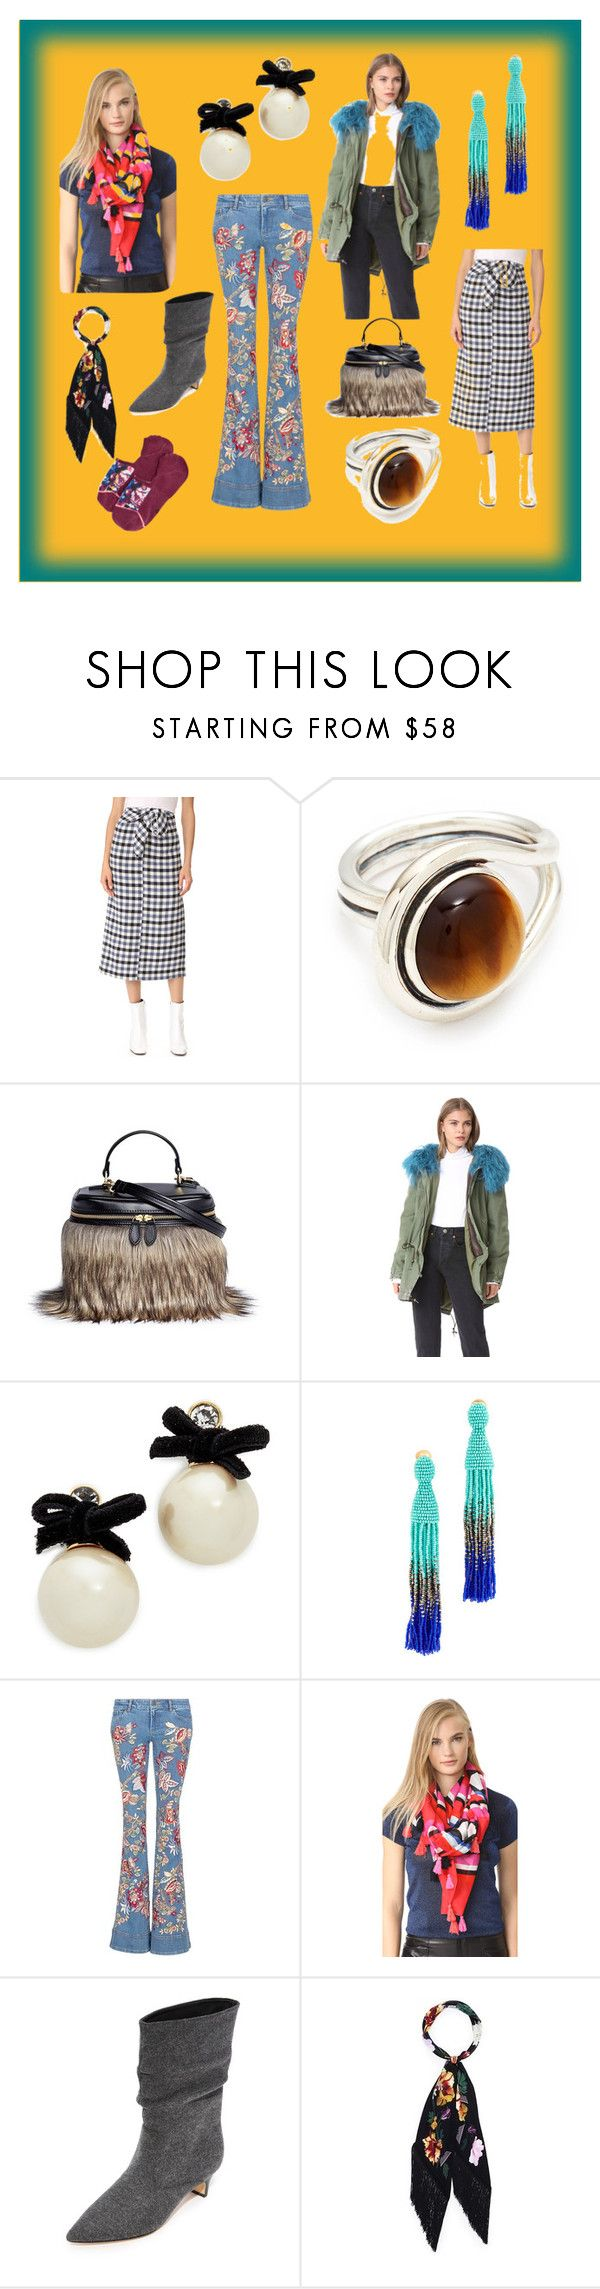 """The Fashion Life"" by cate-jennifer ❤ liked on Polyvore featuring TIBI, Pamela Love, Vasic, Mr & Mrs Italy, Kate Spade, Oscar de la Renta, Alice + Olivia, Sigerson Morrison, Rockins and Stance"